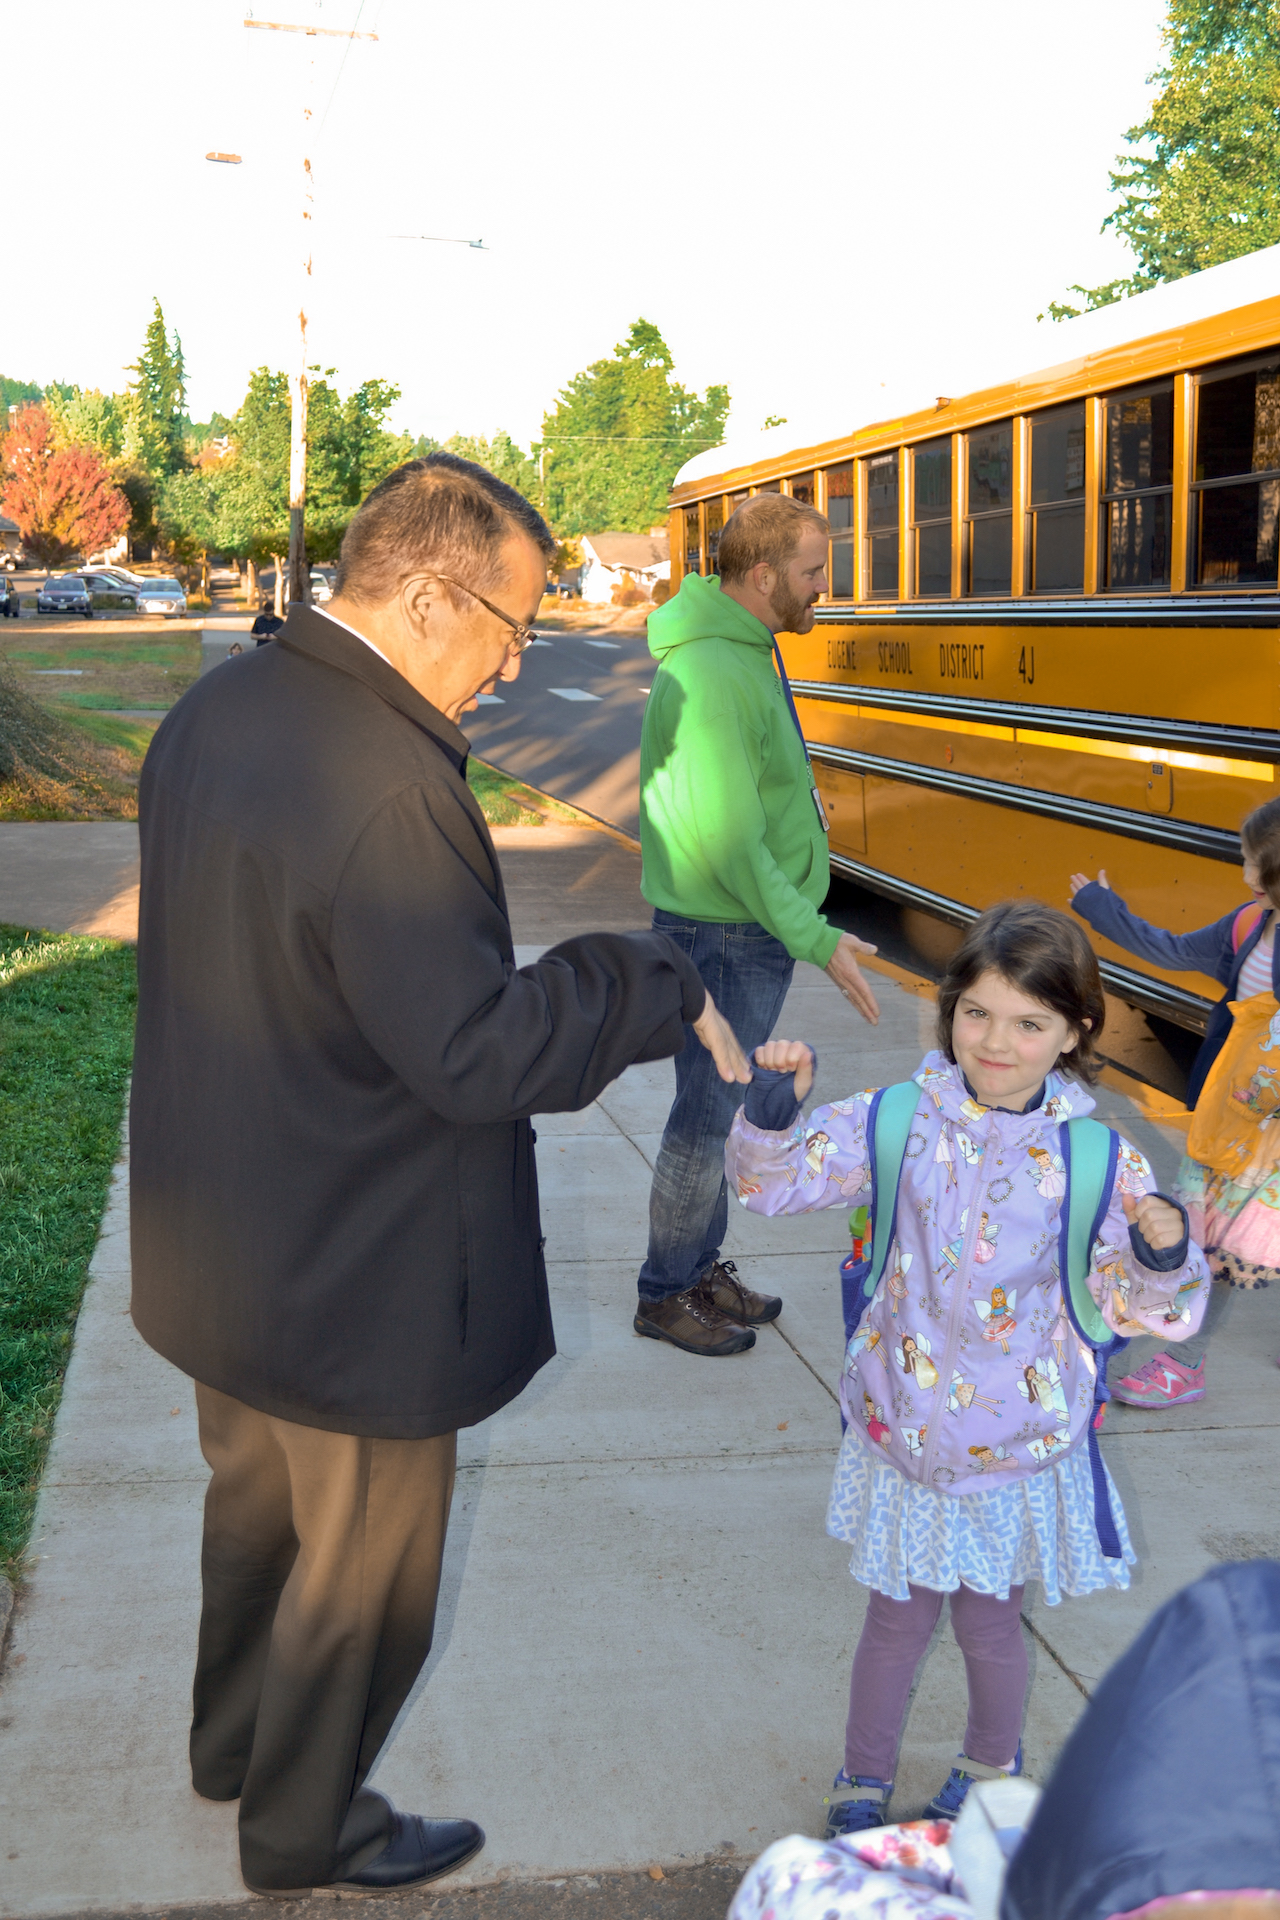 Gustavo Balderas, superintendent for Eugene School District 4J, and a student about to board a school bus.